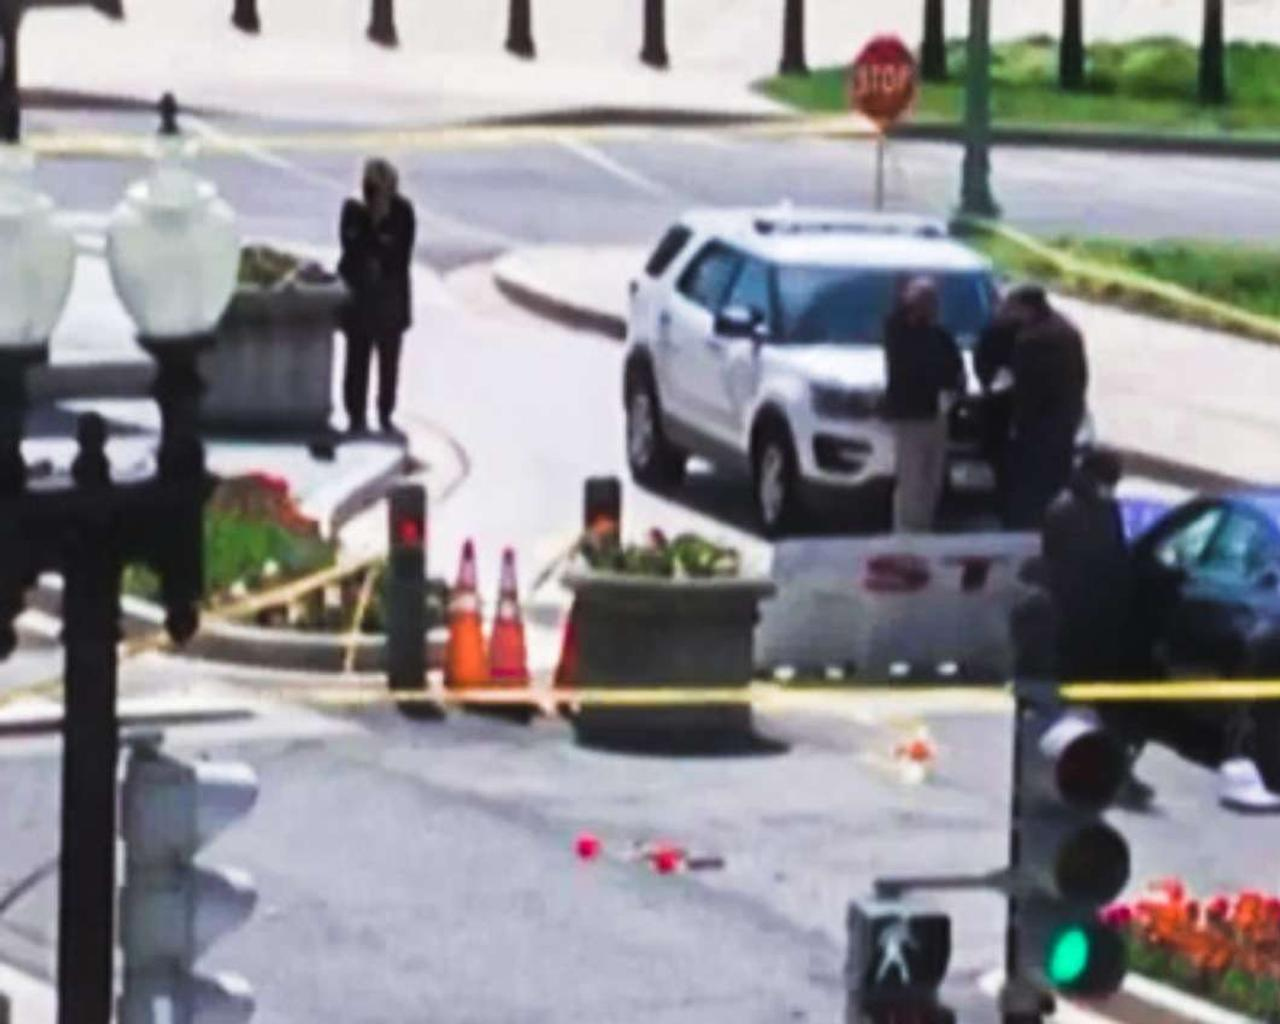 An attacker ran over two guards in front of the Capitol in Washington and was later killed by police.